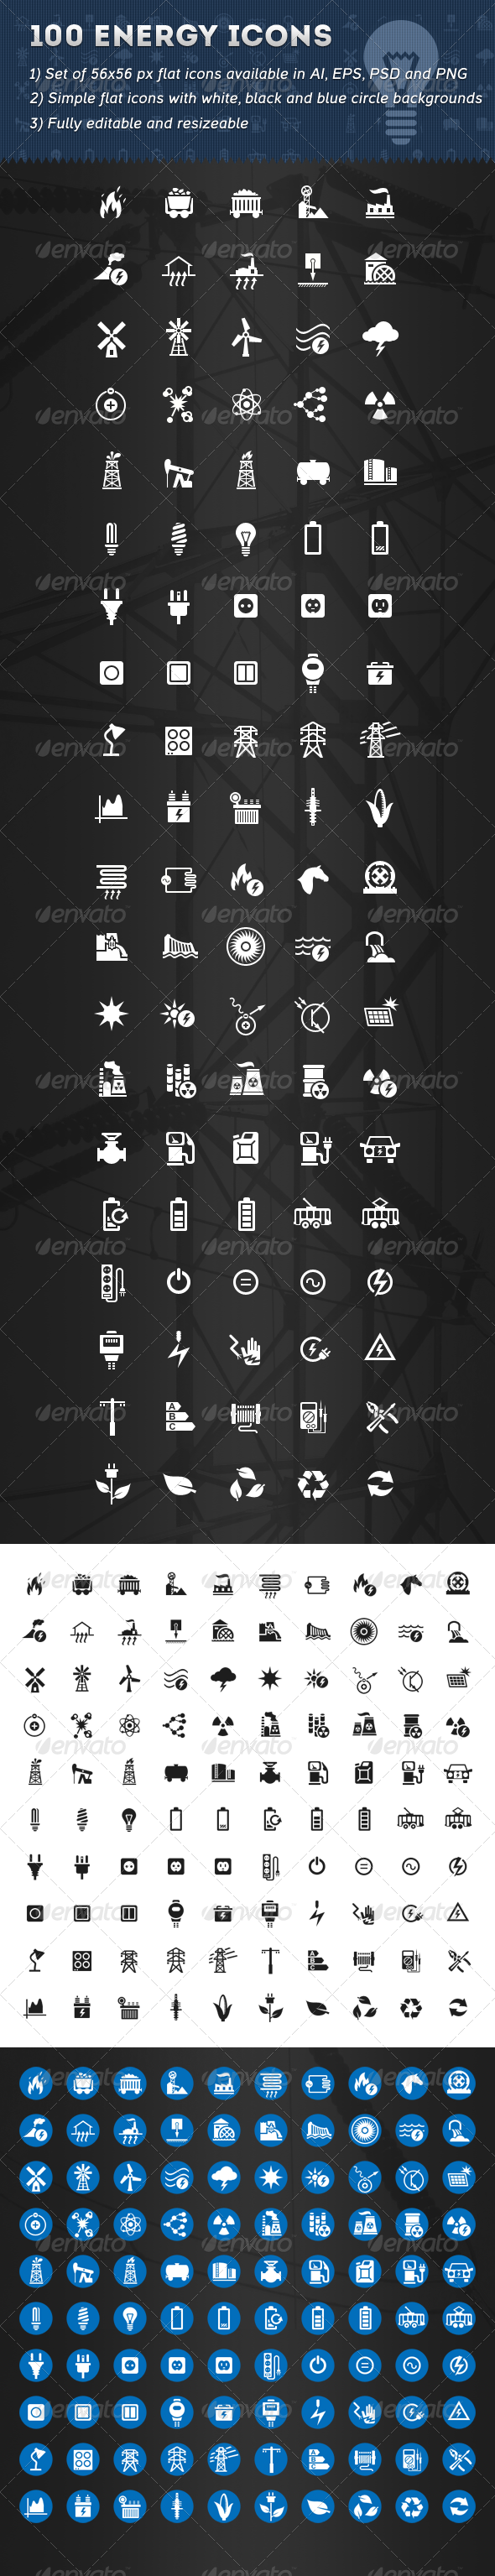 100 Energy Icons - Technology Icons